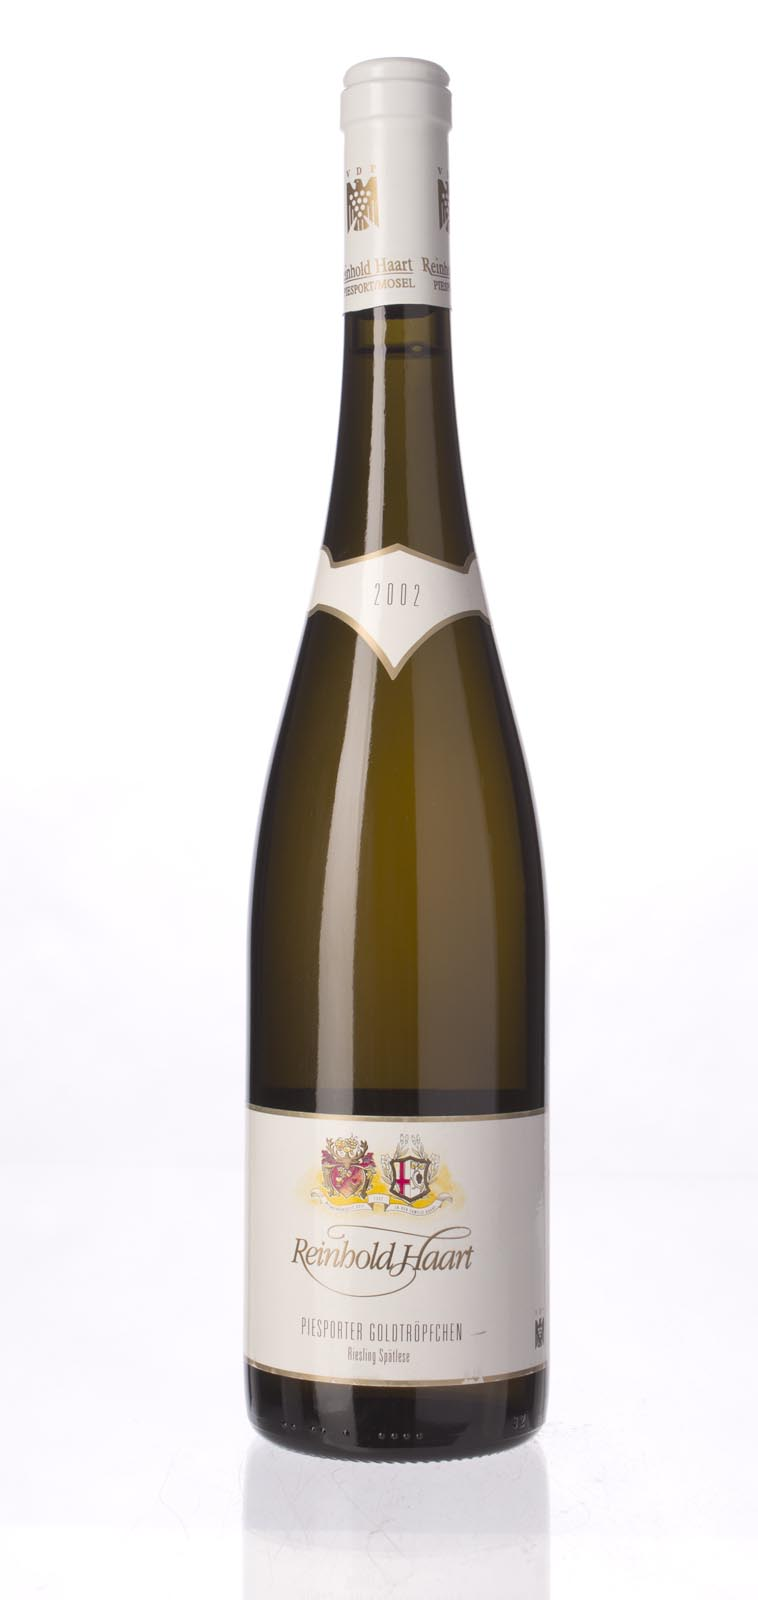 Reinhold Haart Piesporter Goldtropfchen Riesling Spatlese 2002,  (WS91) from The BPW - Merchants of rare and fine wines.